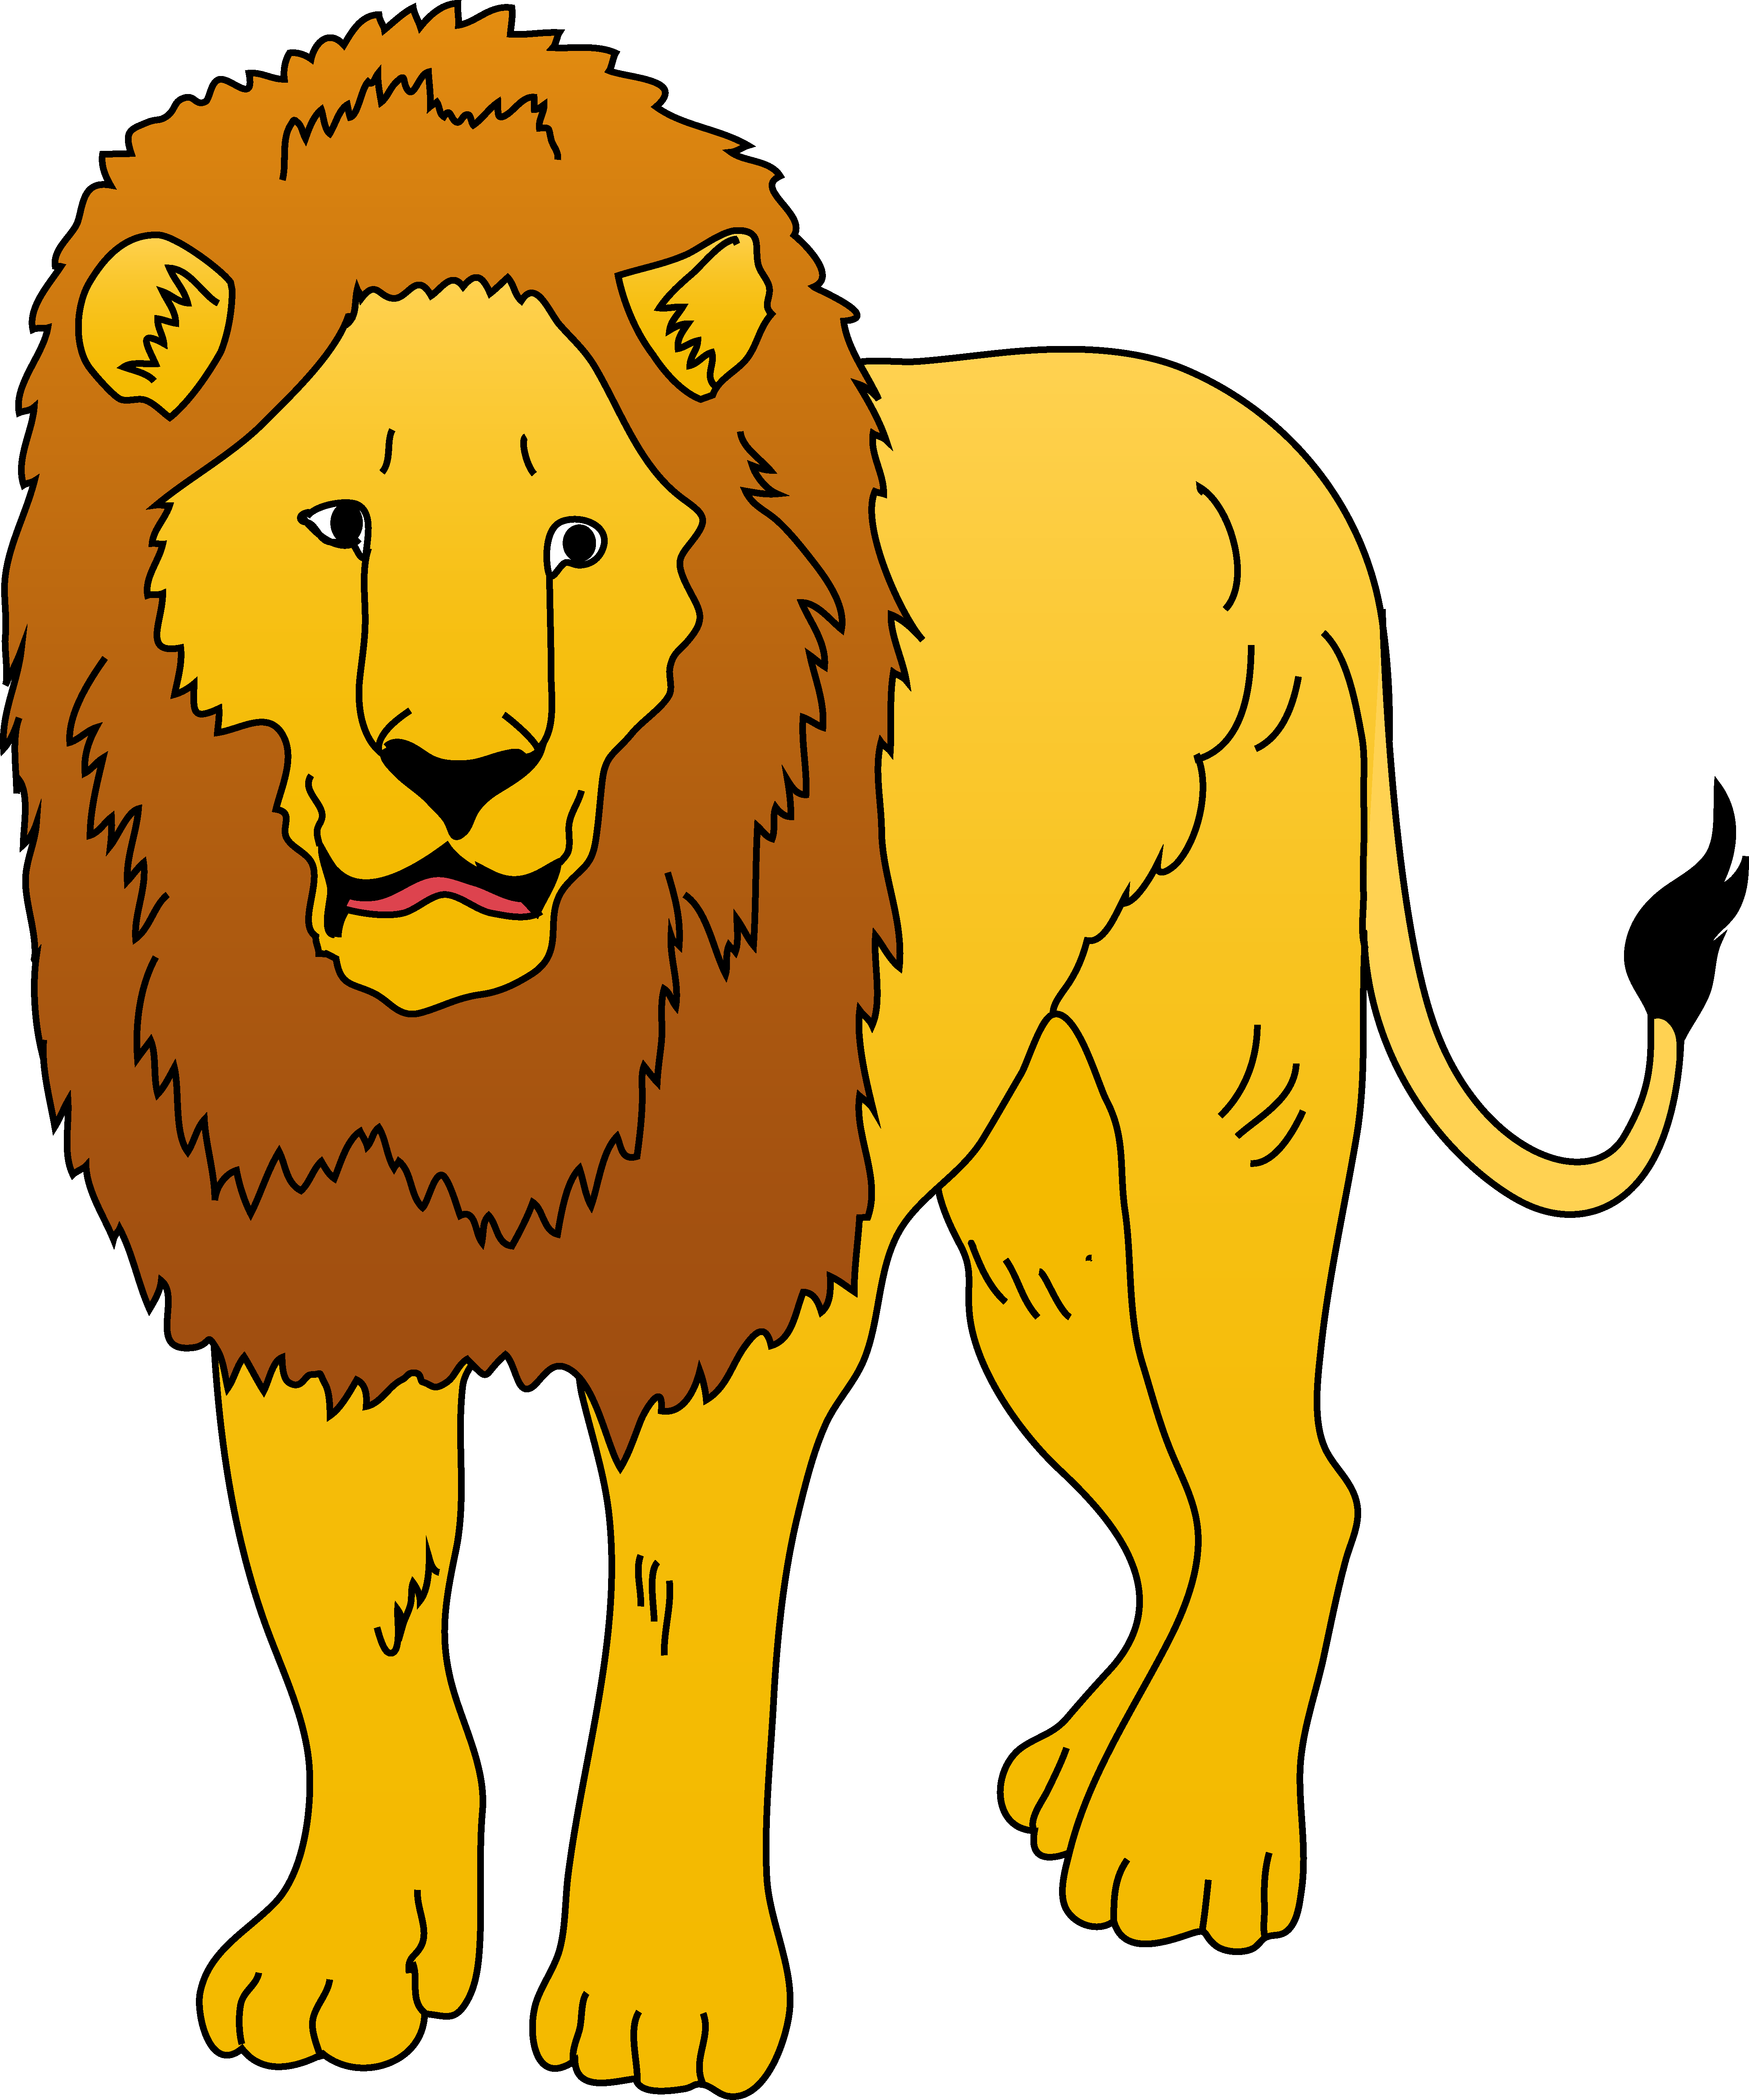 royalty free download Free lion cliparts download. Lions clipart.